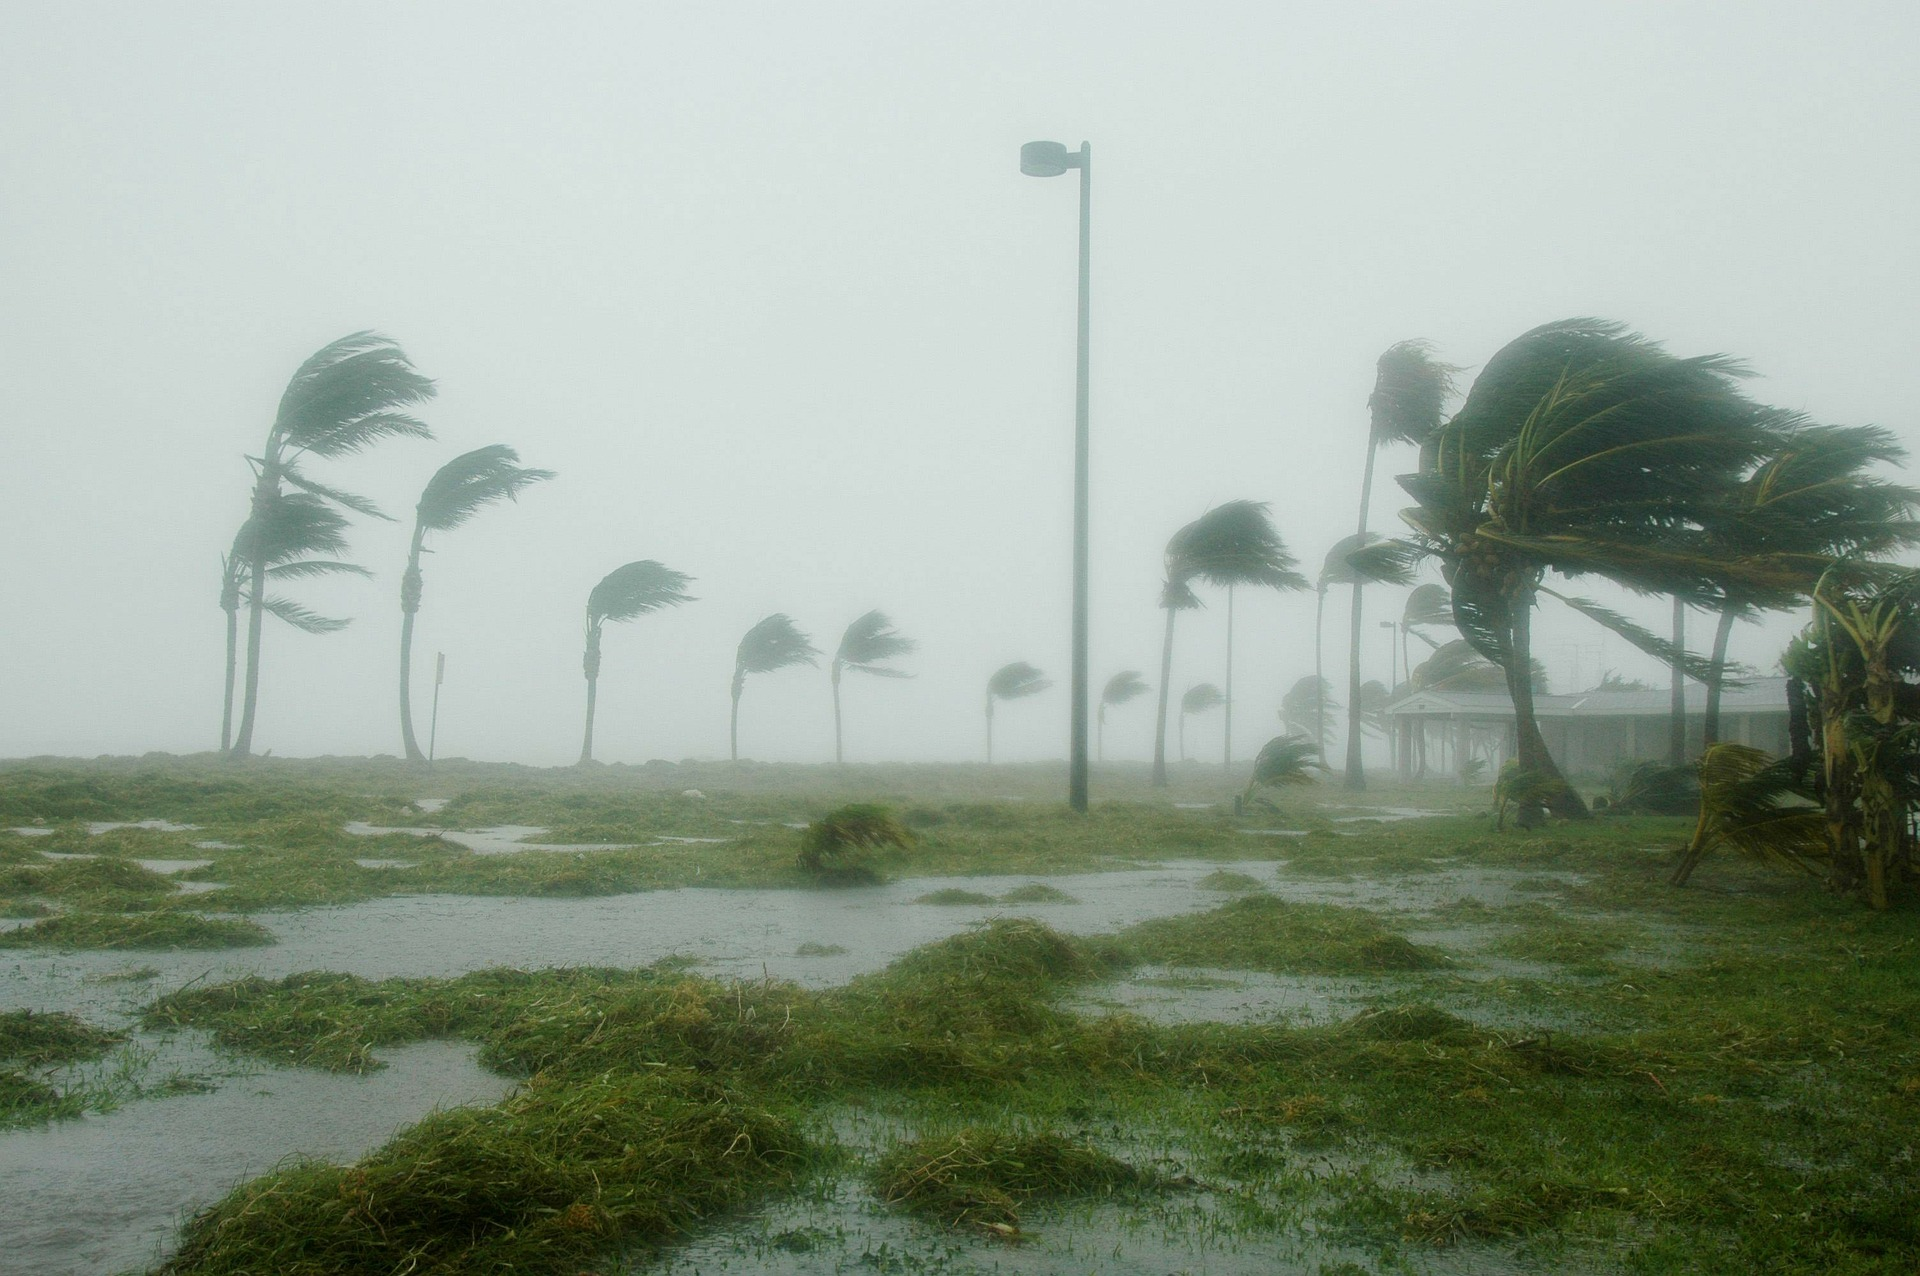 effects of hurricane winds on beach, palm trees